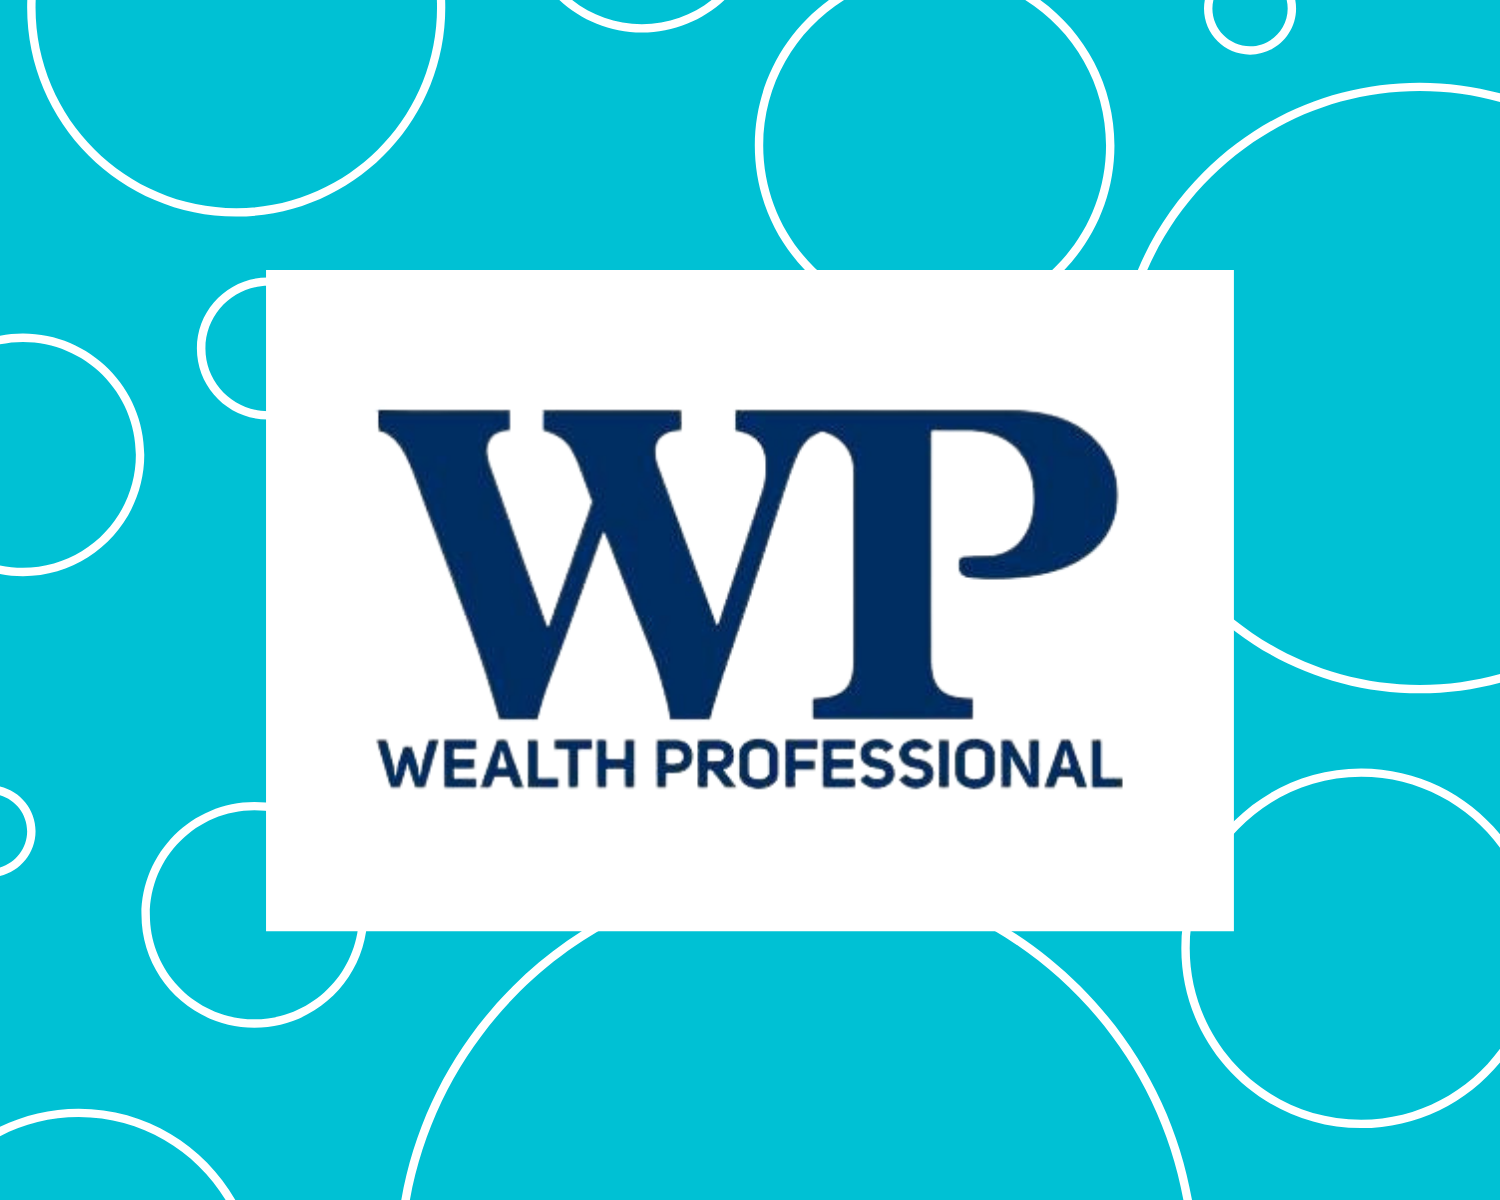 Wealth Professional Article: Conquest Eyes Continued Expansion with $7.5M Funding Round